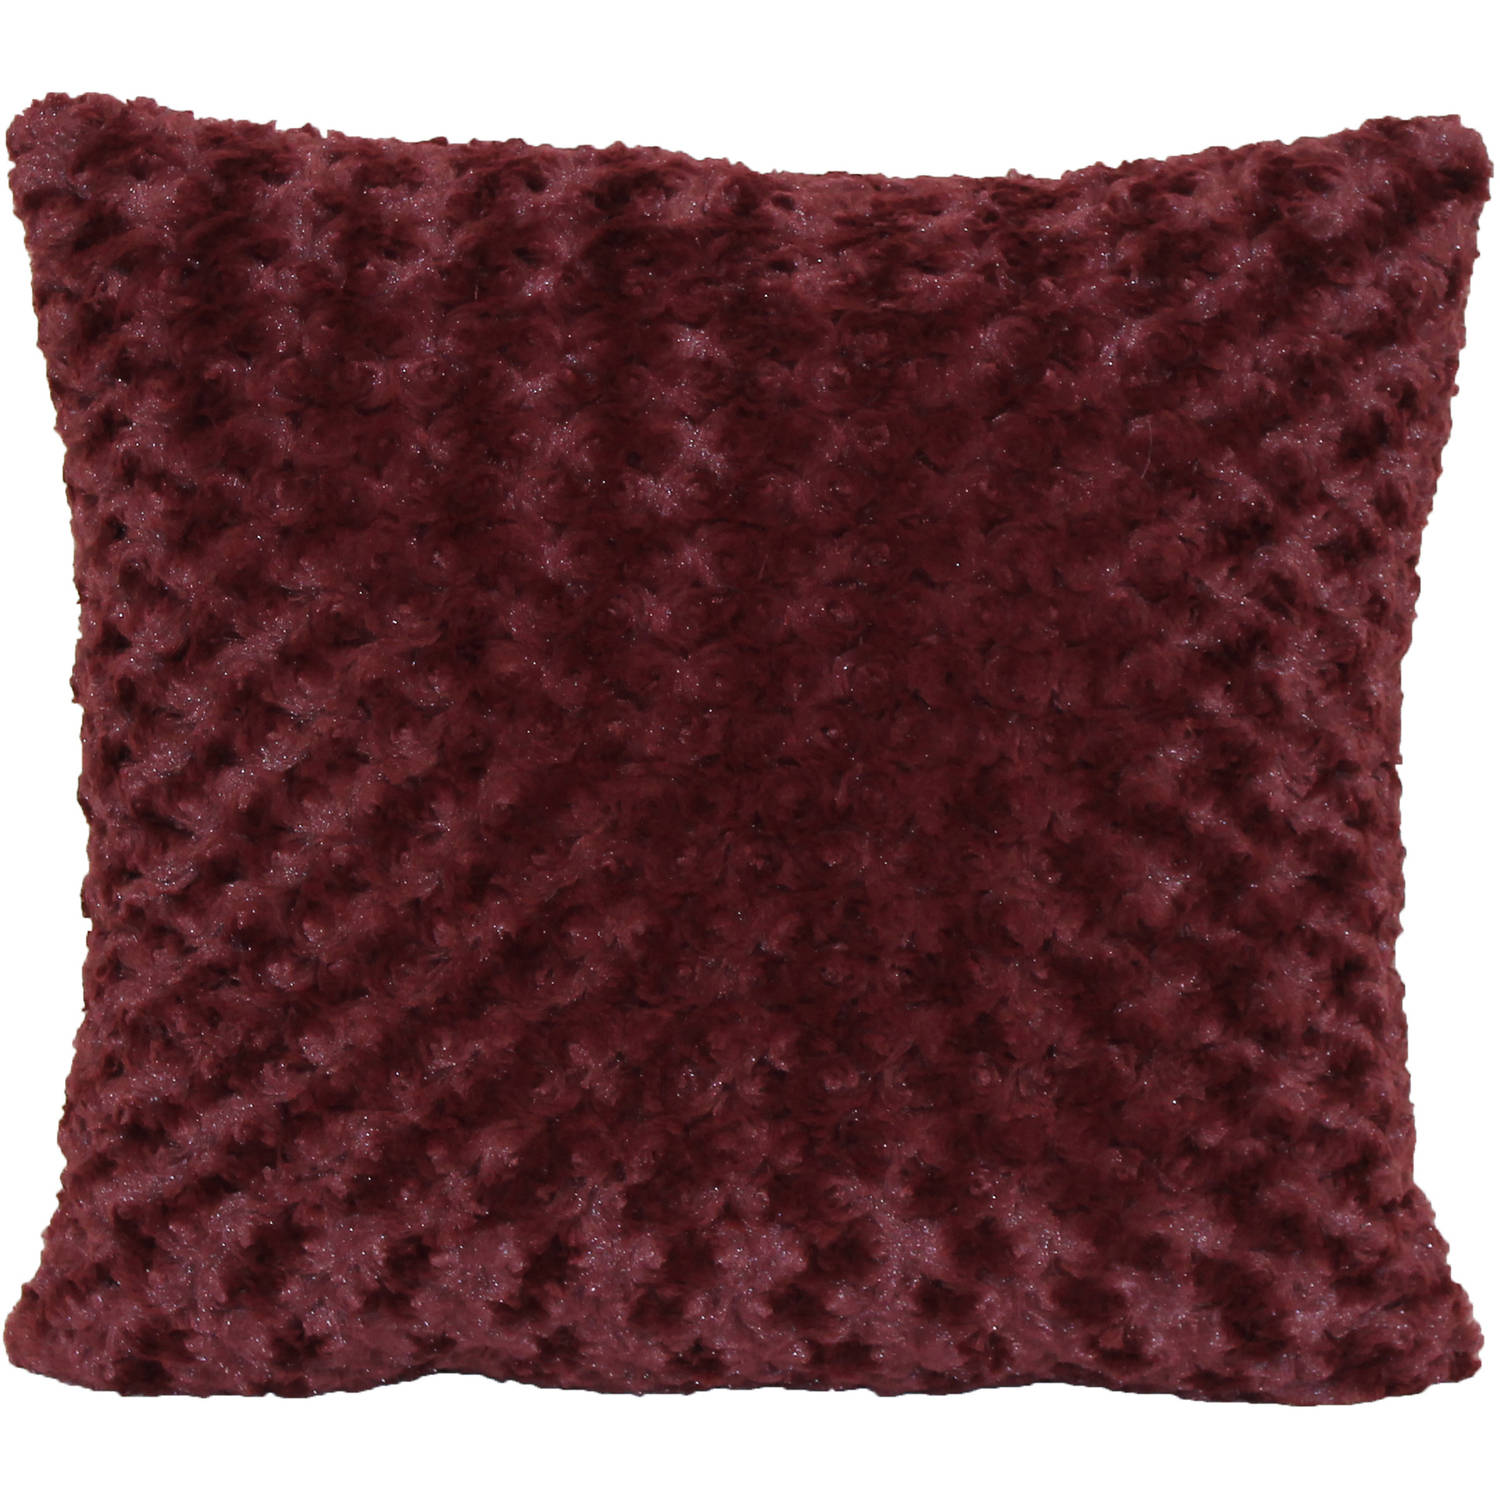 "Better Homes and Gardens Rosette Fur 18"" x 18"" Pillow"